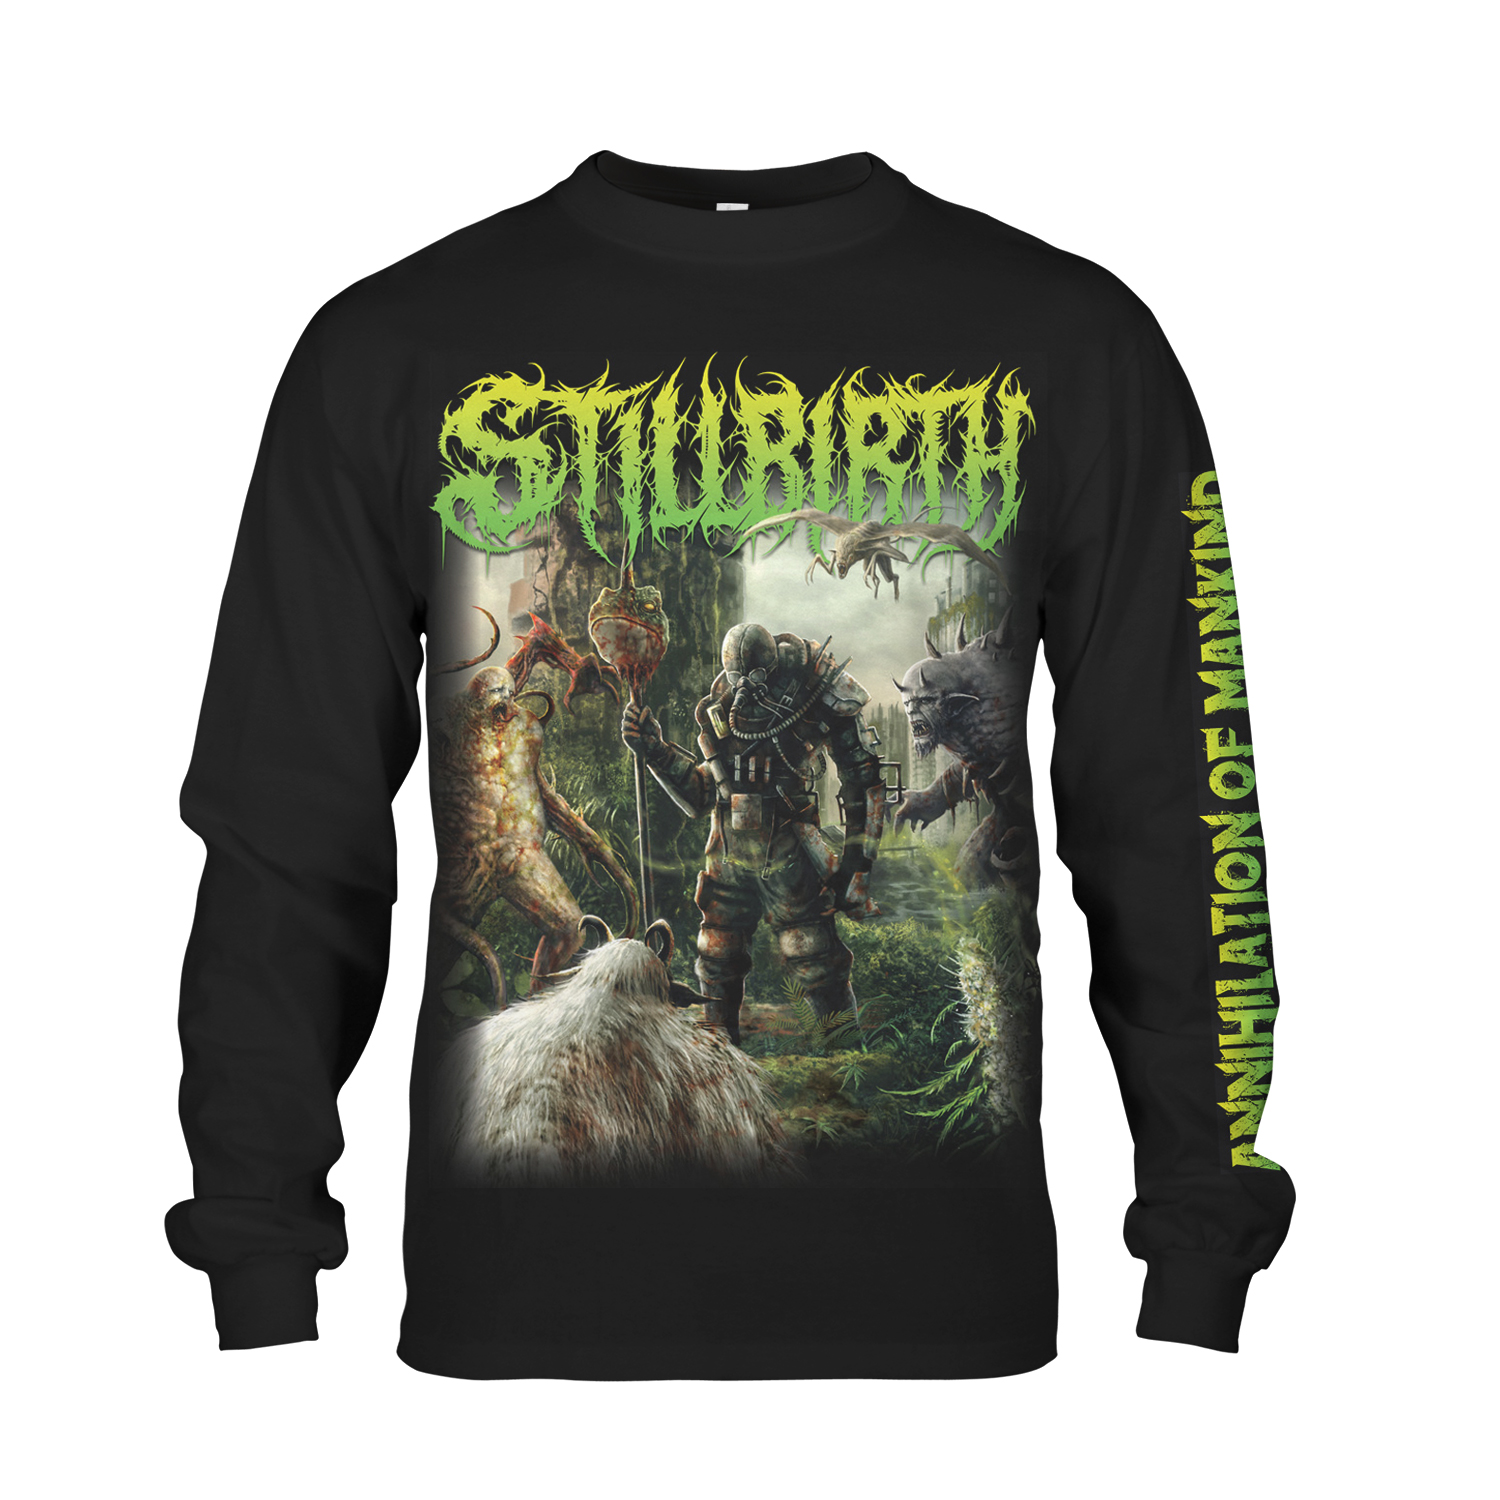 Annihilation of Mankind Longsleeve + CD Bundle